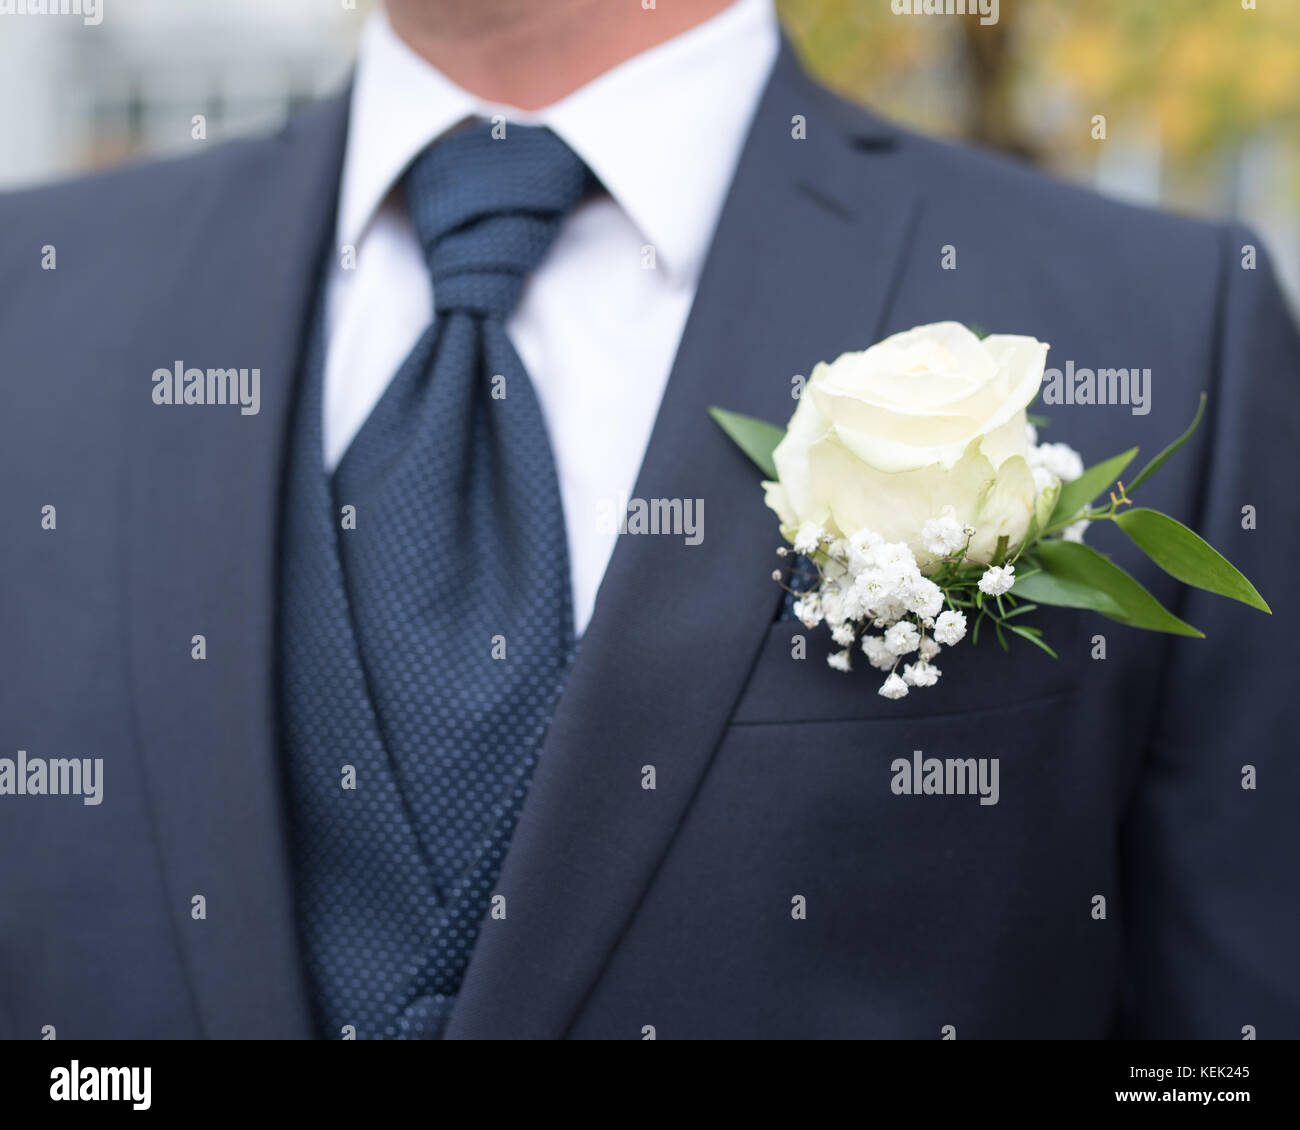 Weisses Hemd Stock Photos & Weisses Hemd Stock Images - Alamy